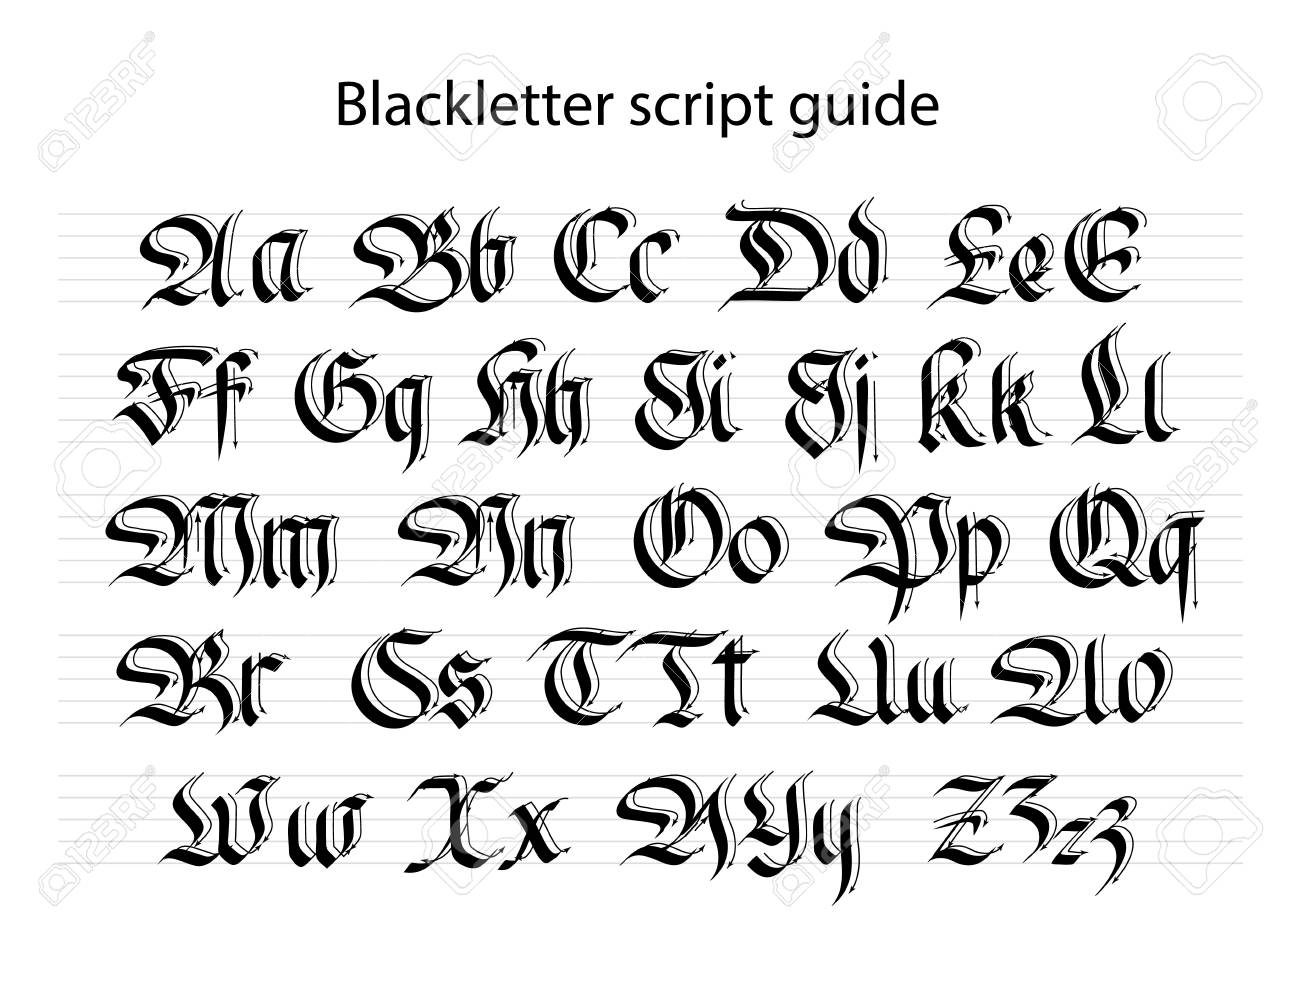 Calligraphy Practice Guide For A Black Letter Script Vector